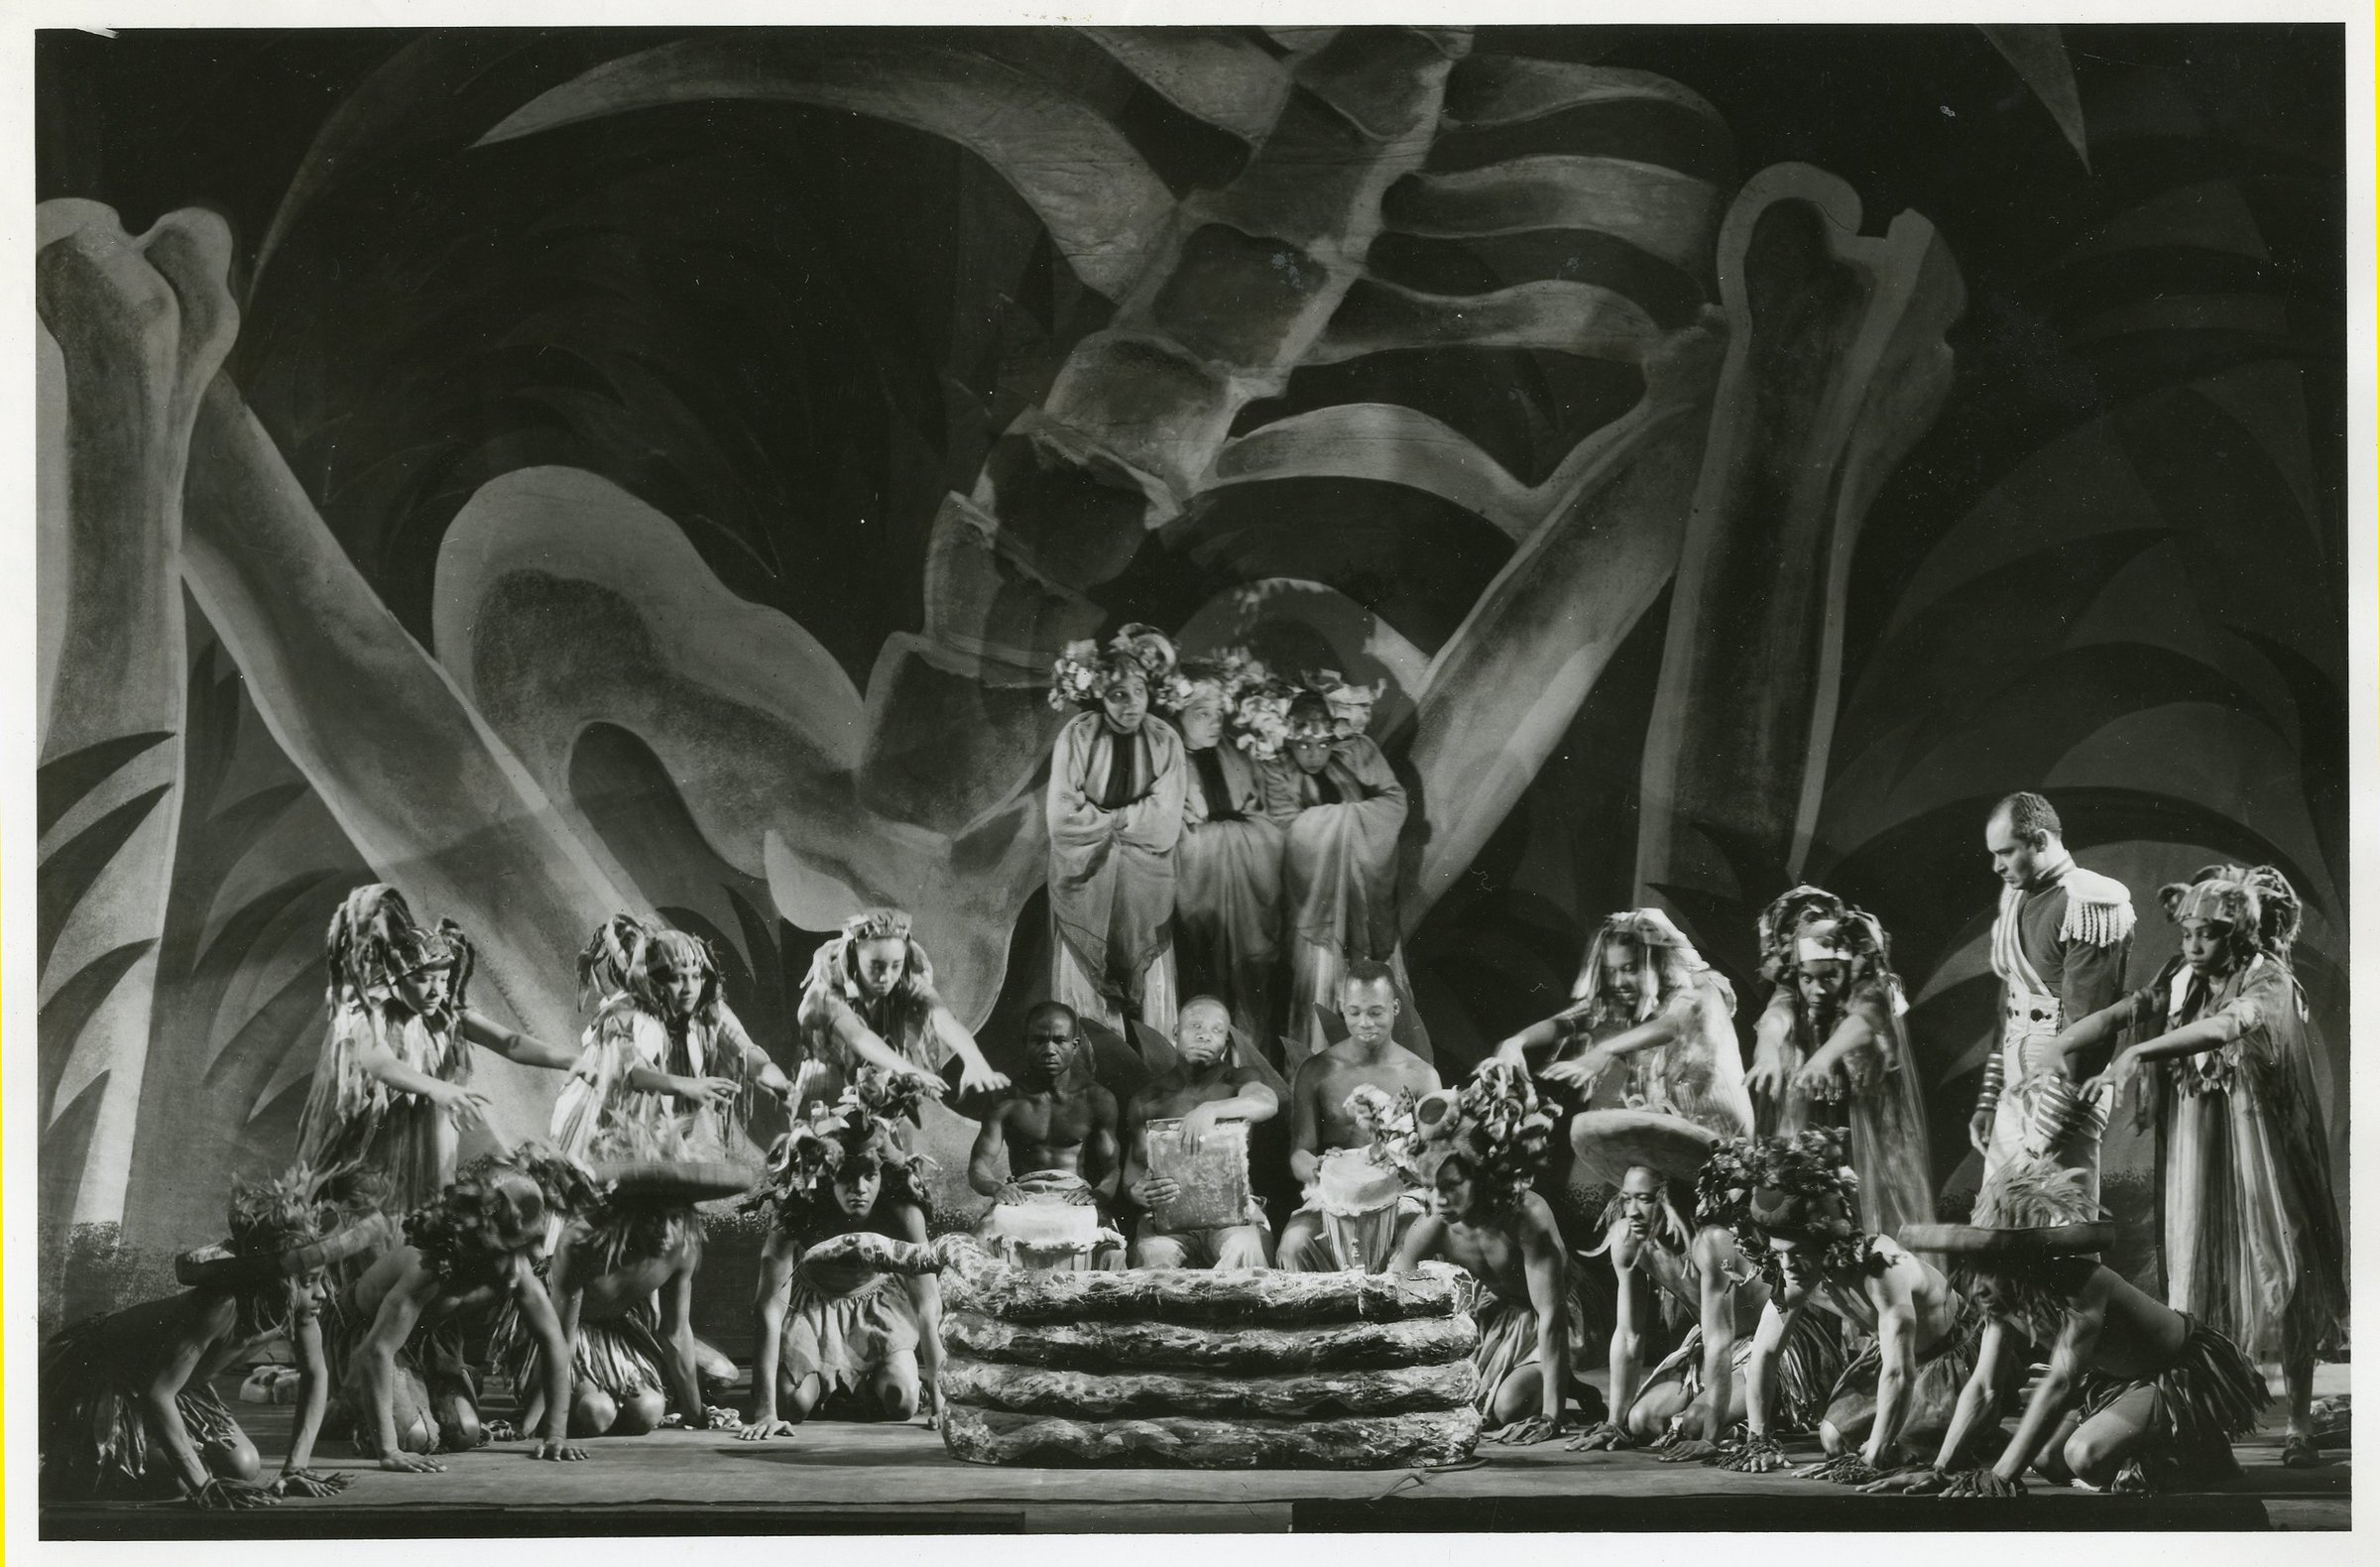 Scene from the Federal Theatre Project production of <em>Macbeth</em>